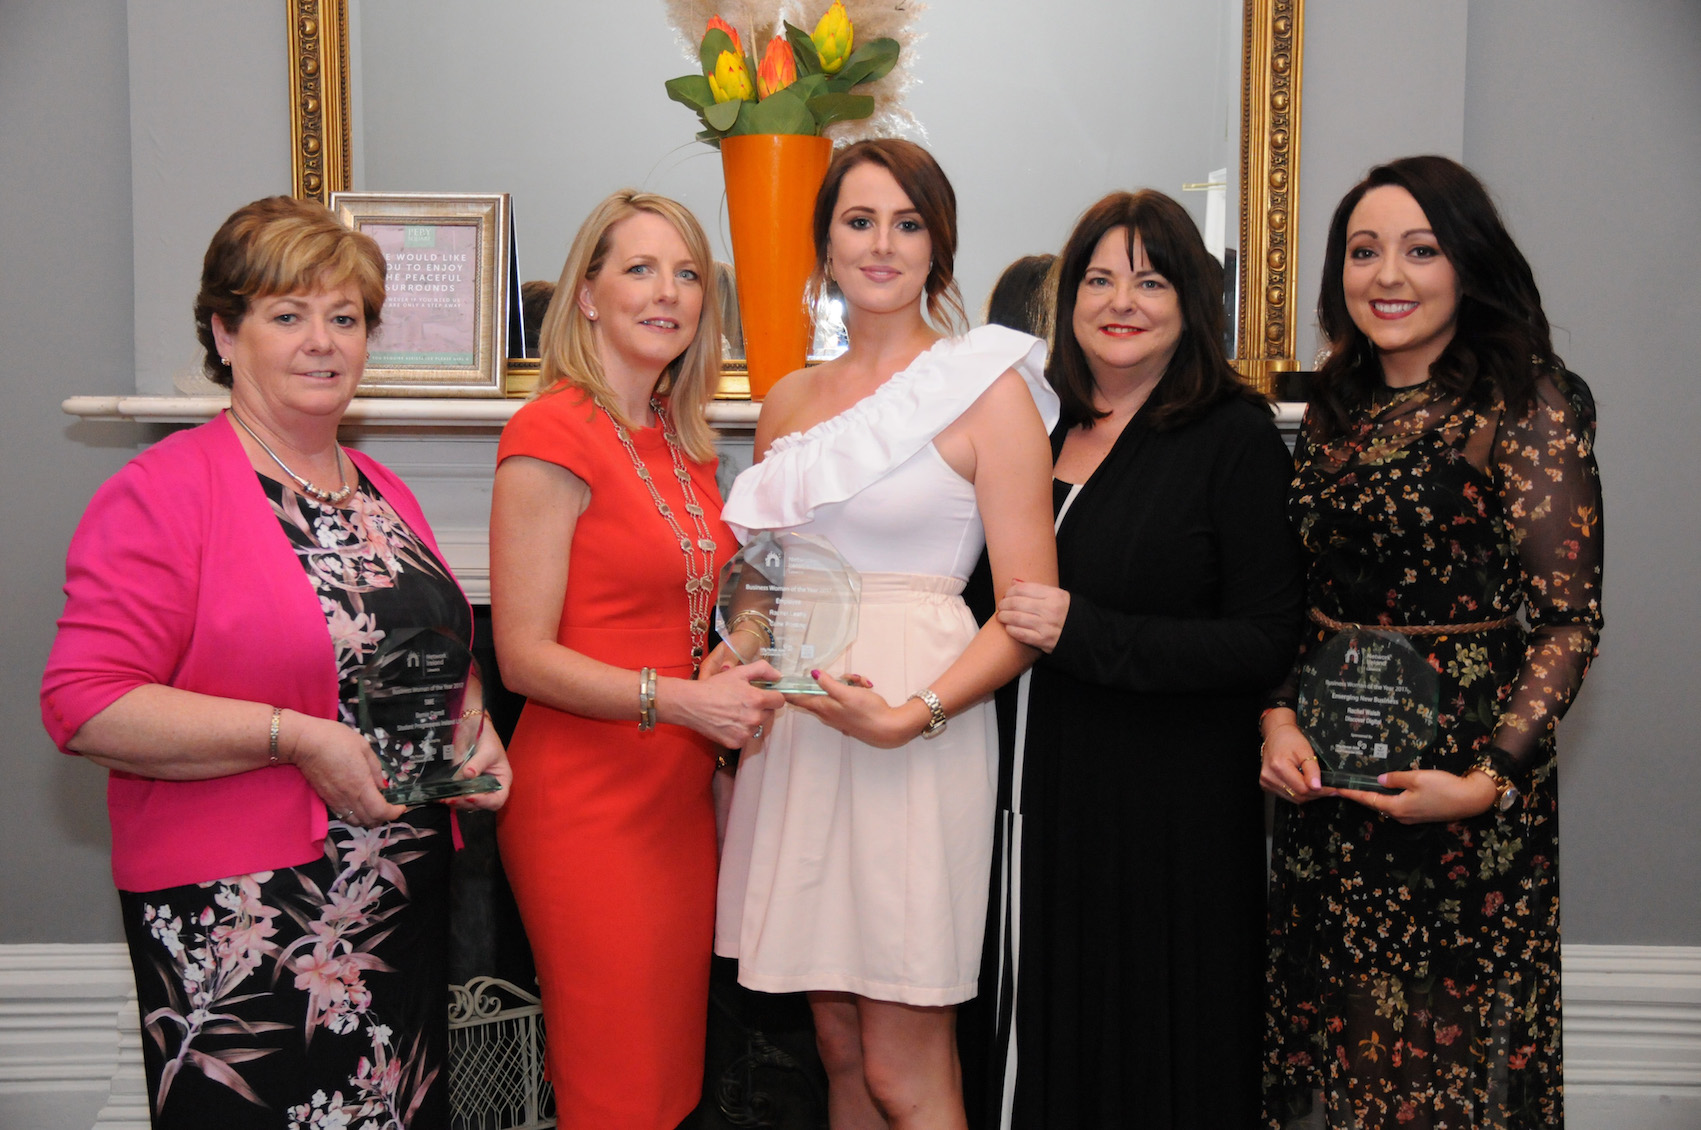 Network Ireland Businesswoman of the Year Award 2017